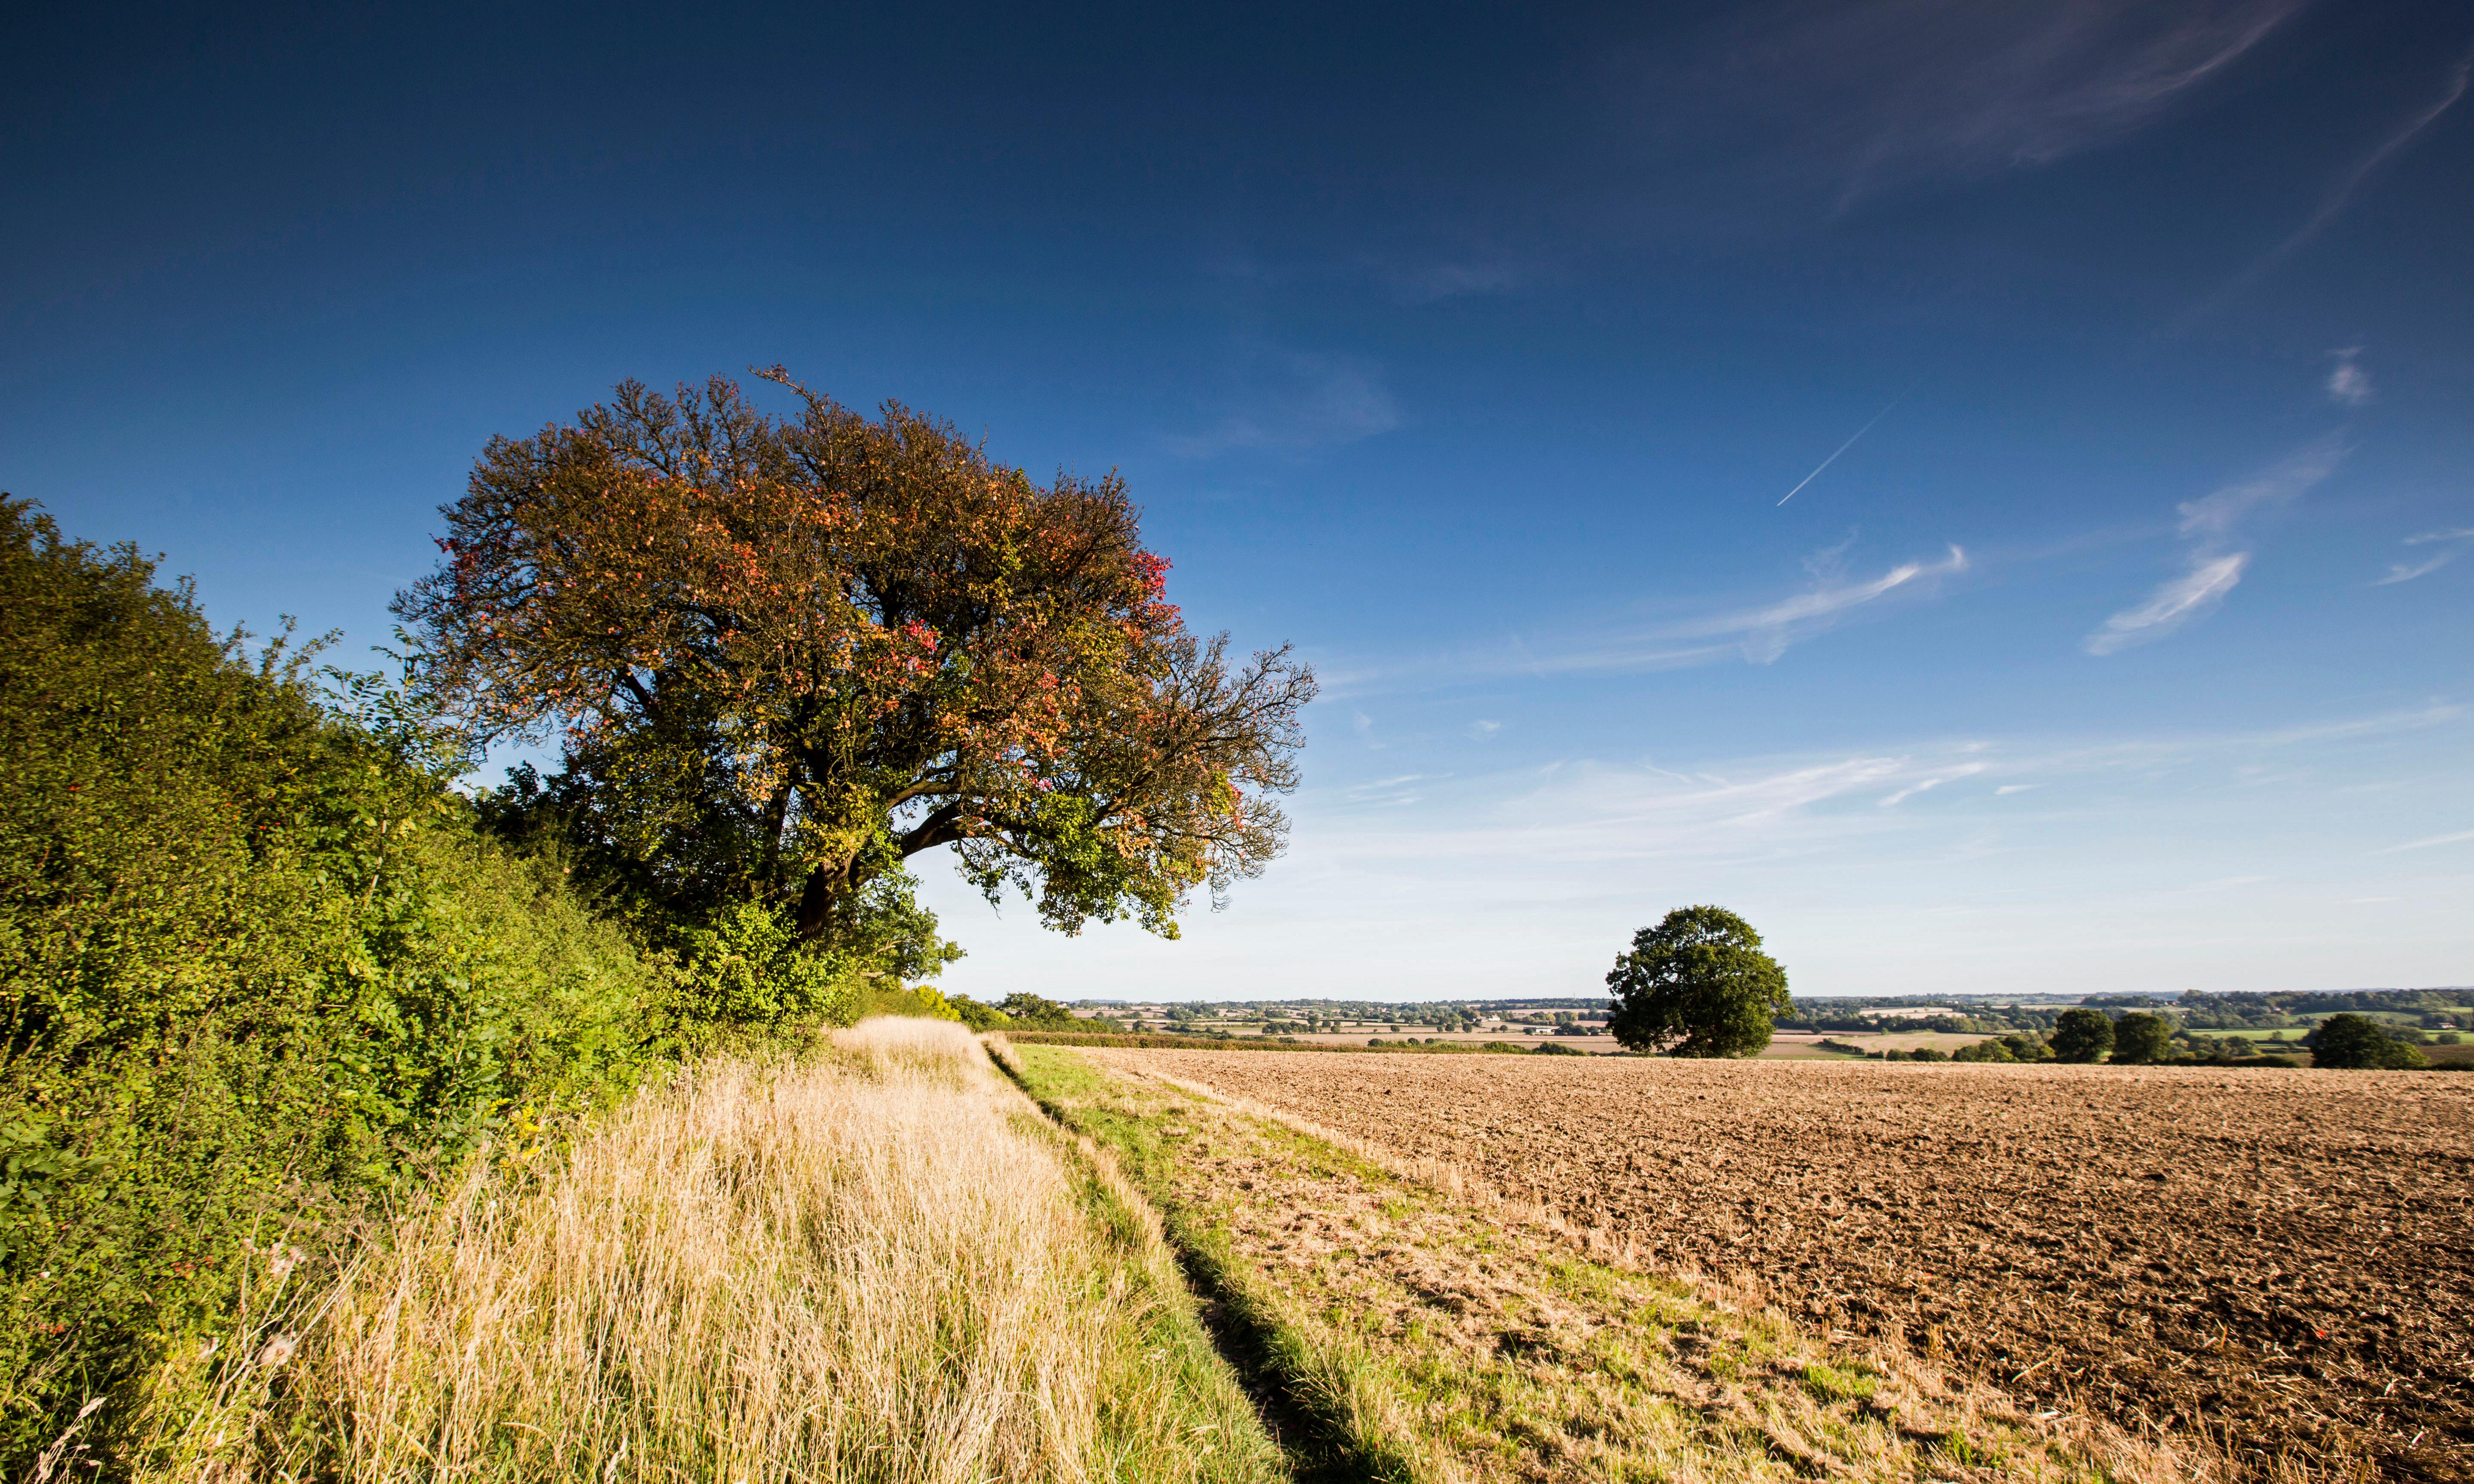 'It's an enormous act of ecological vandalism': the ancient forests under threat from HS2